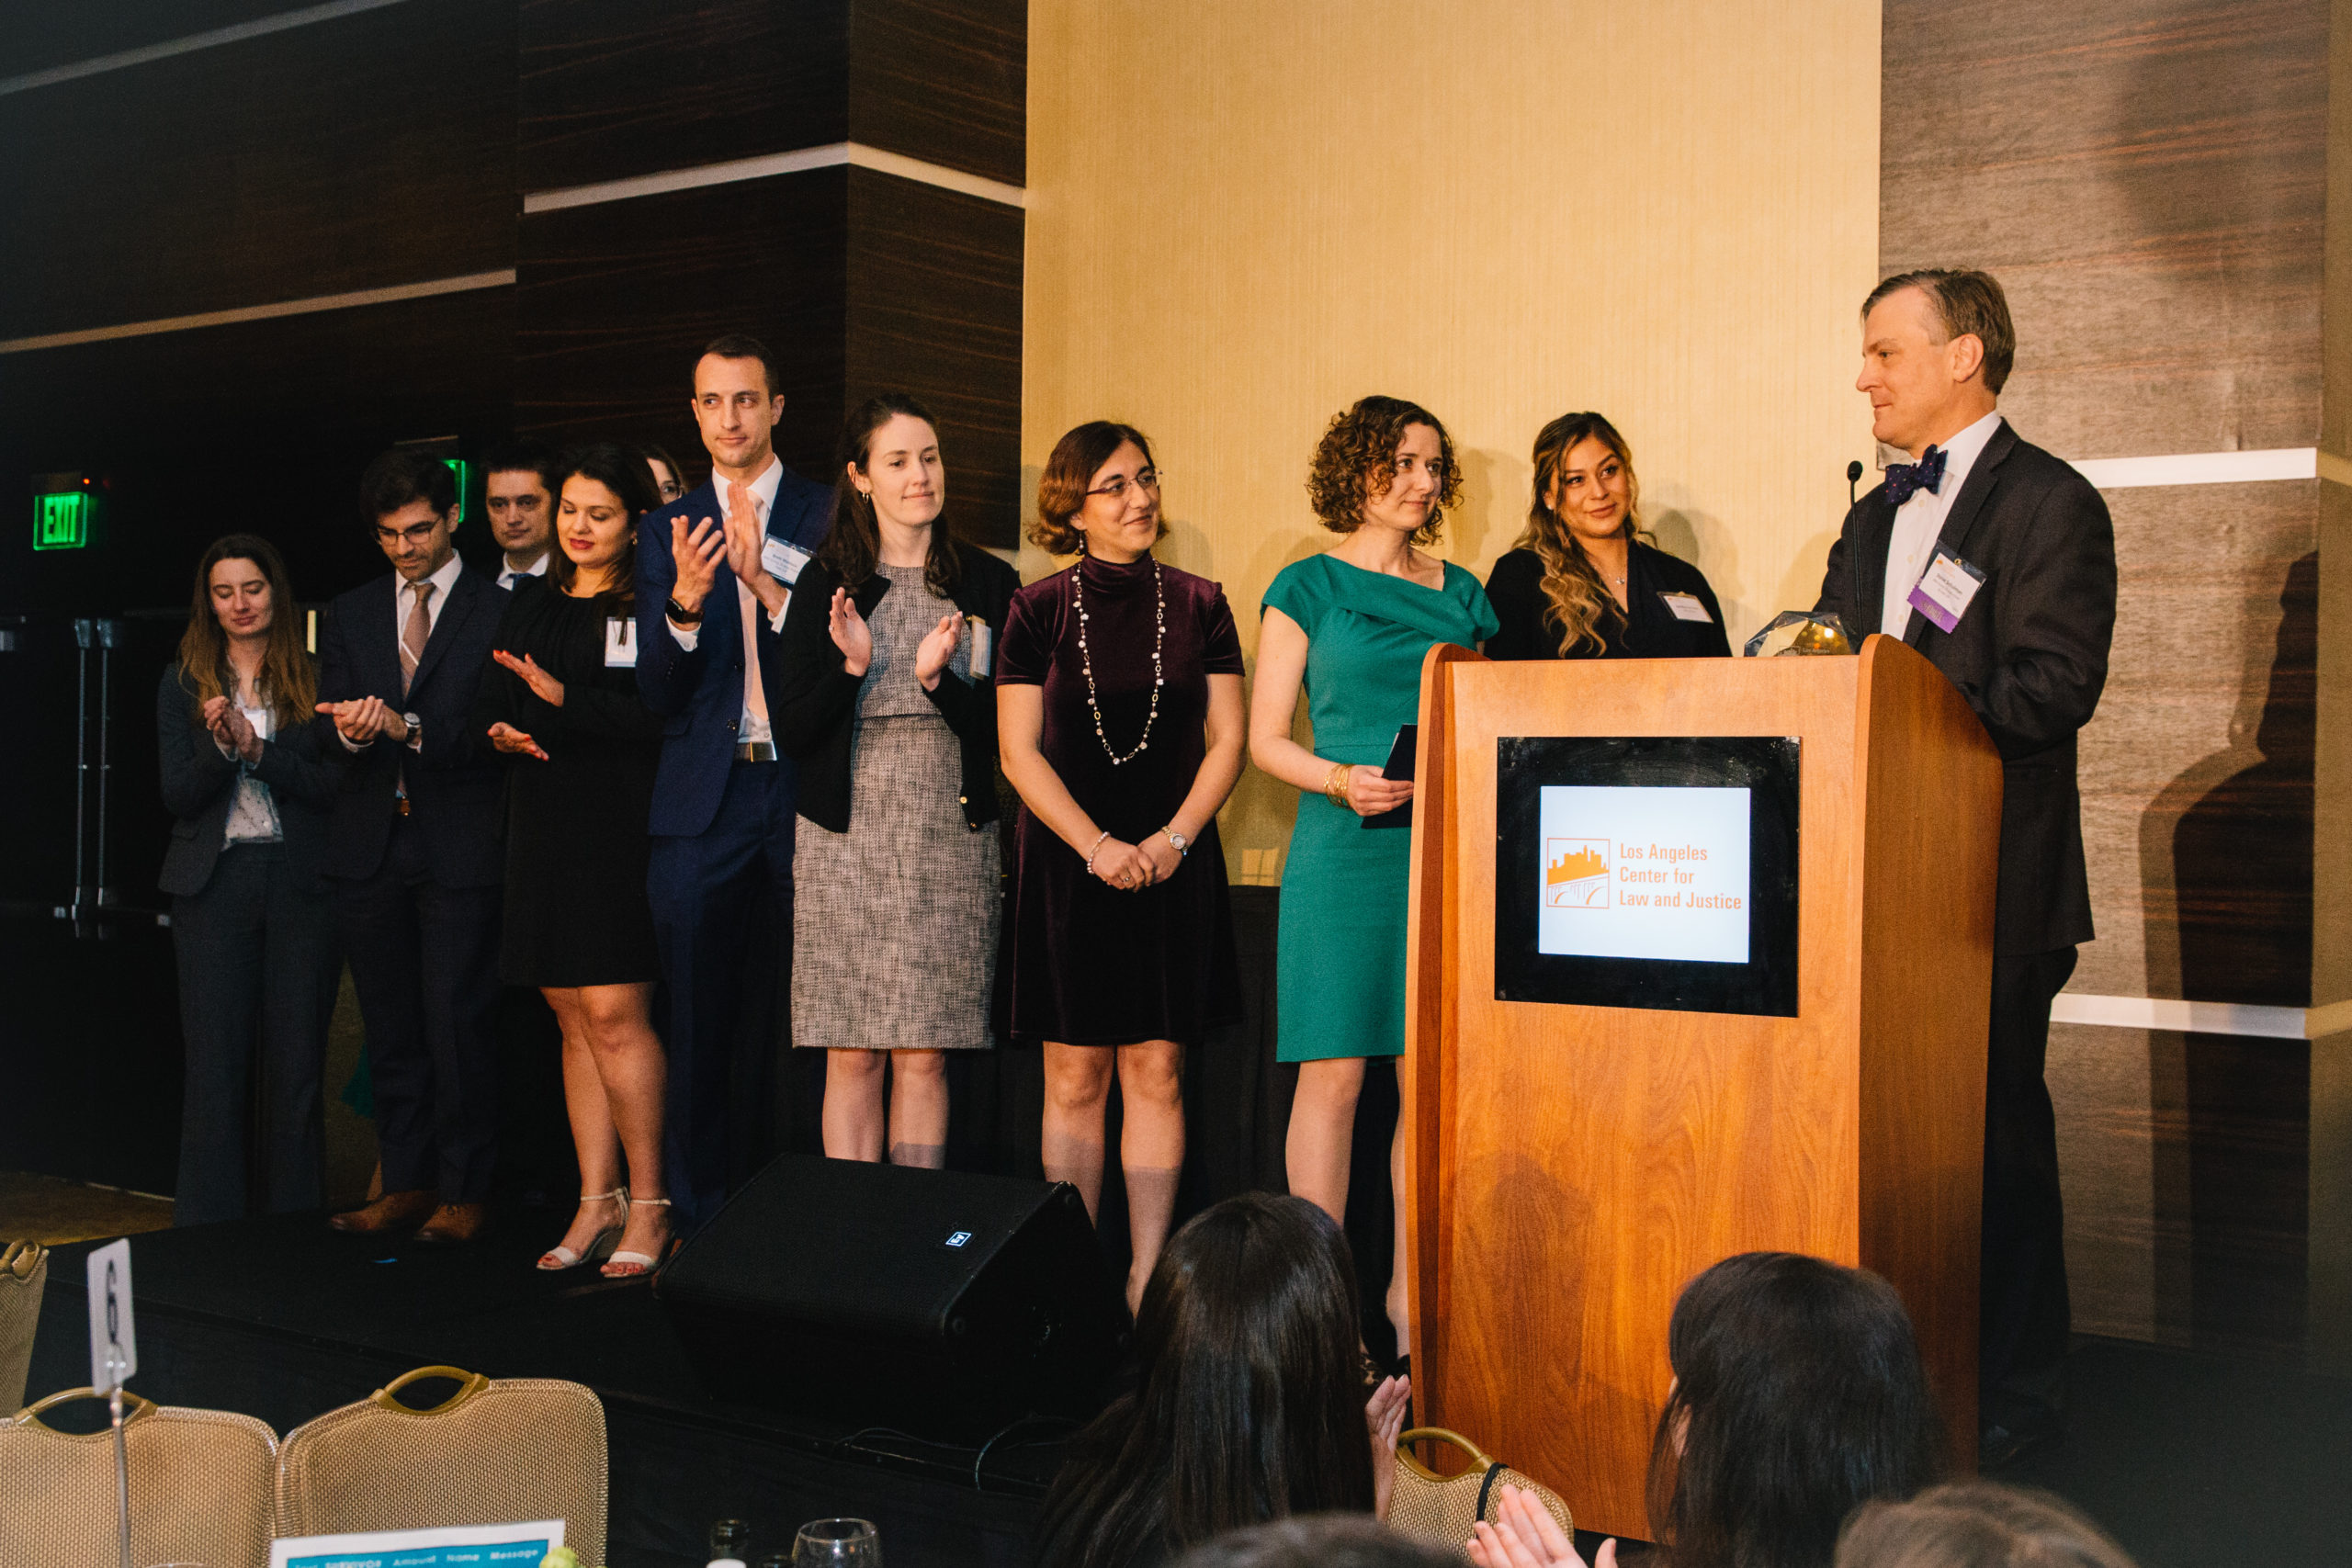 Akin Gump Employees speaking at the 2019 Gala